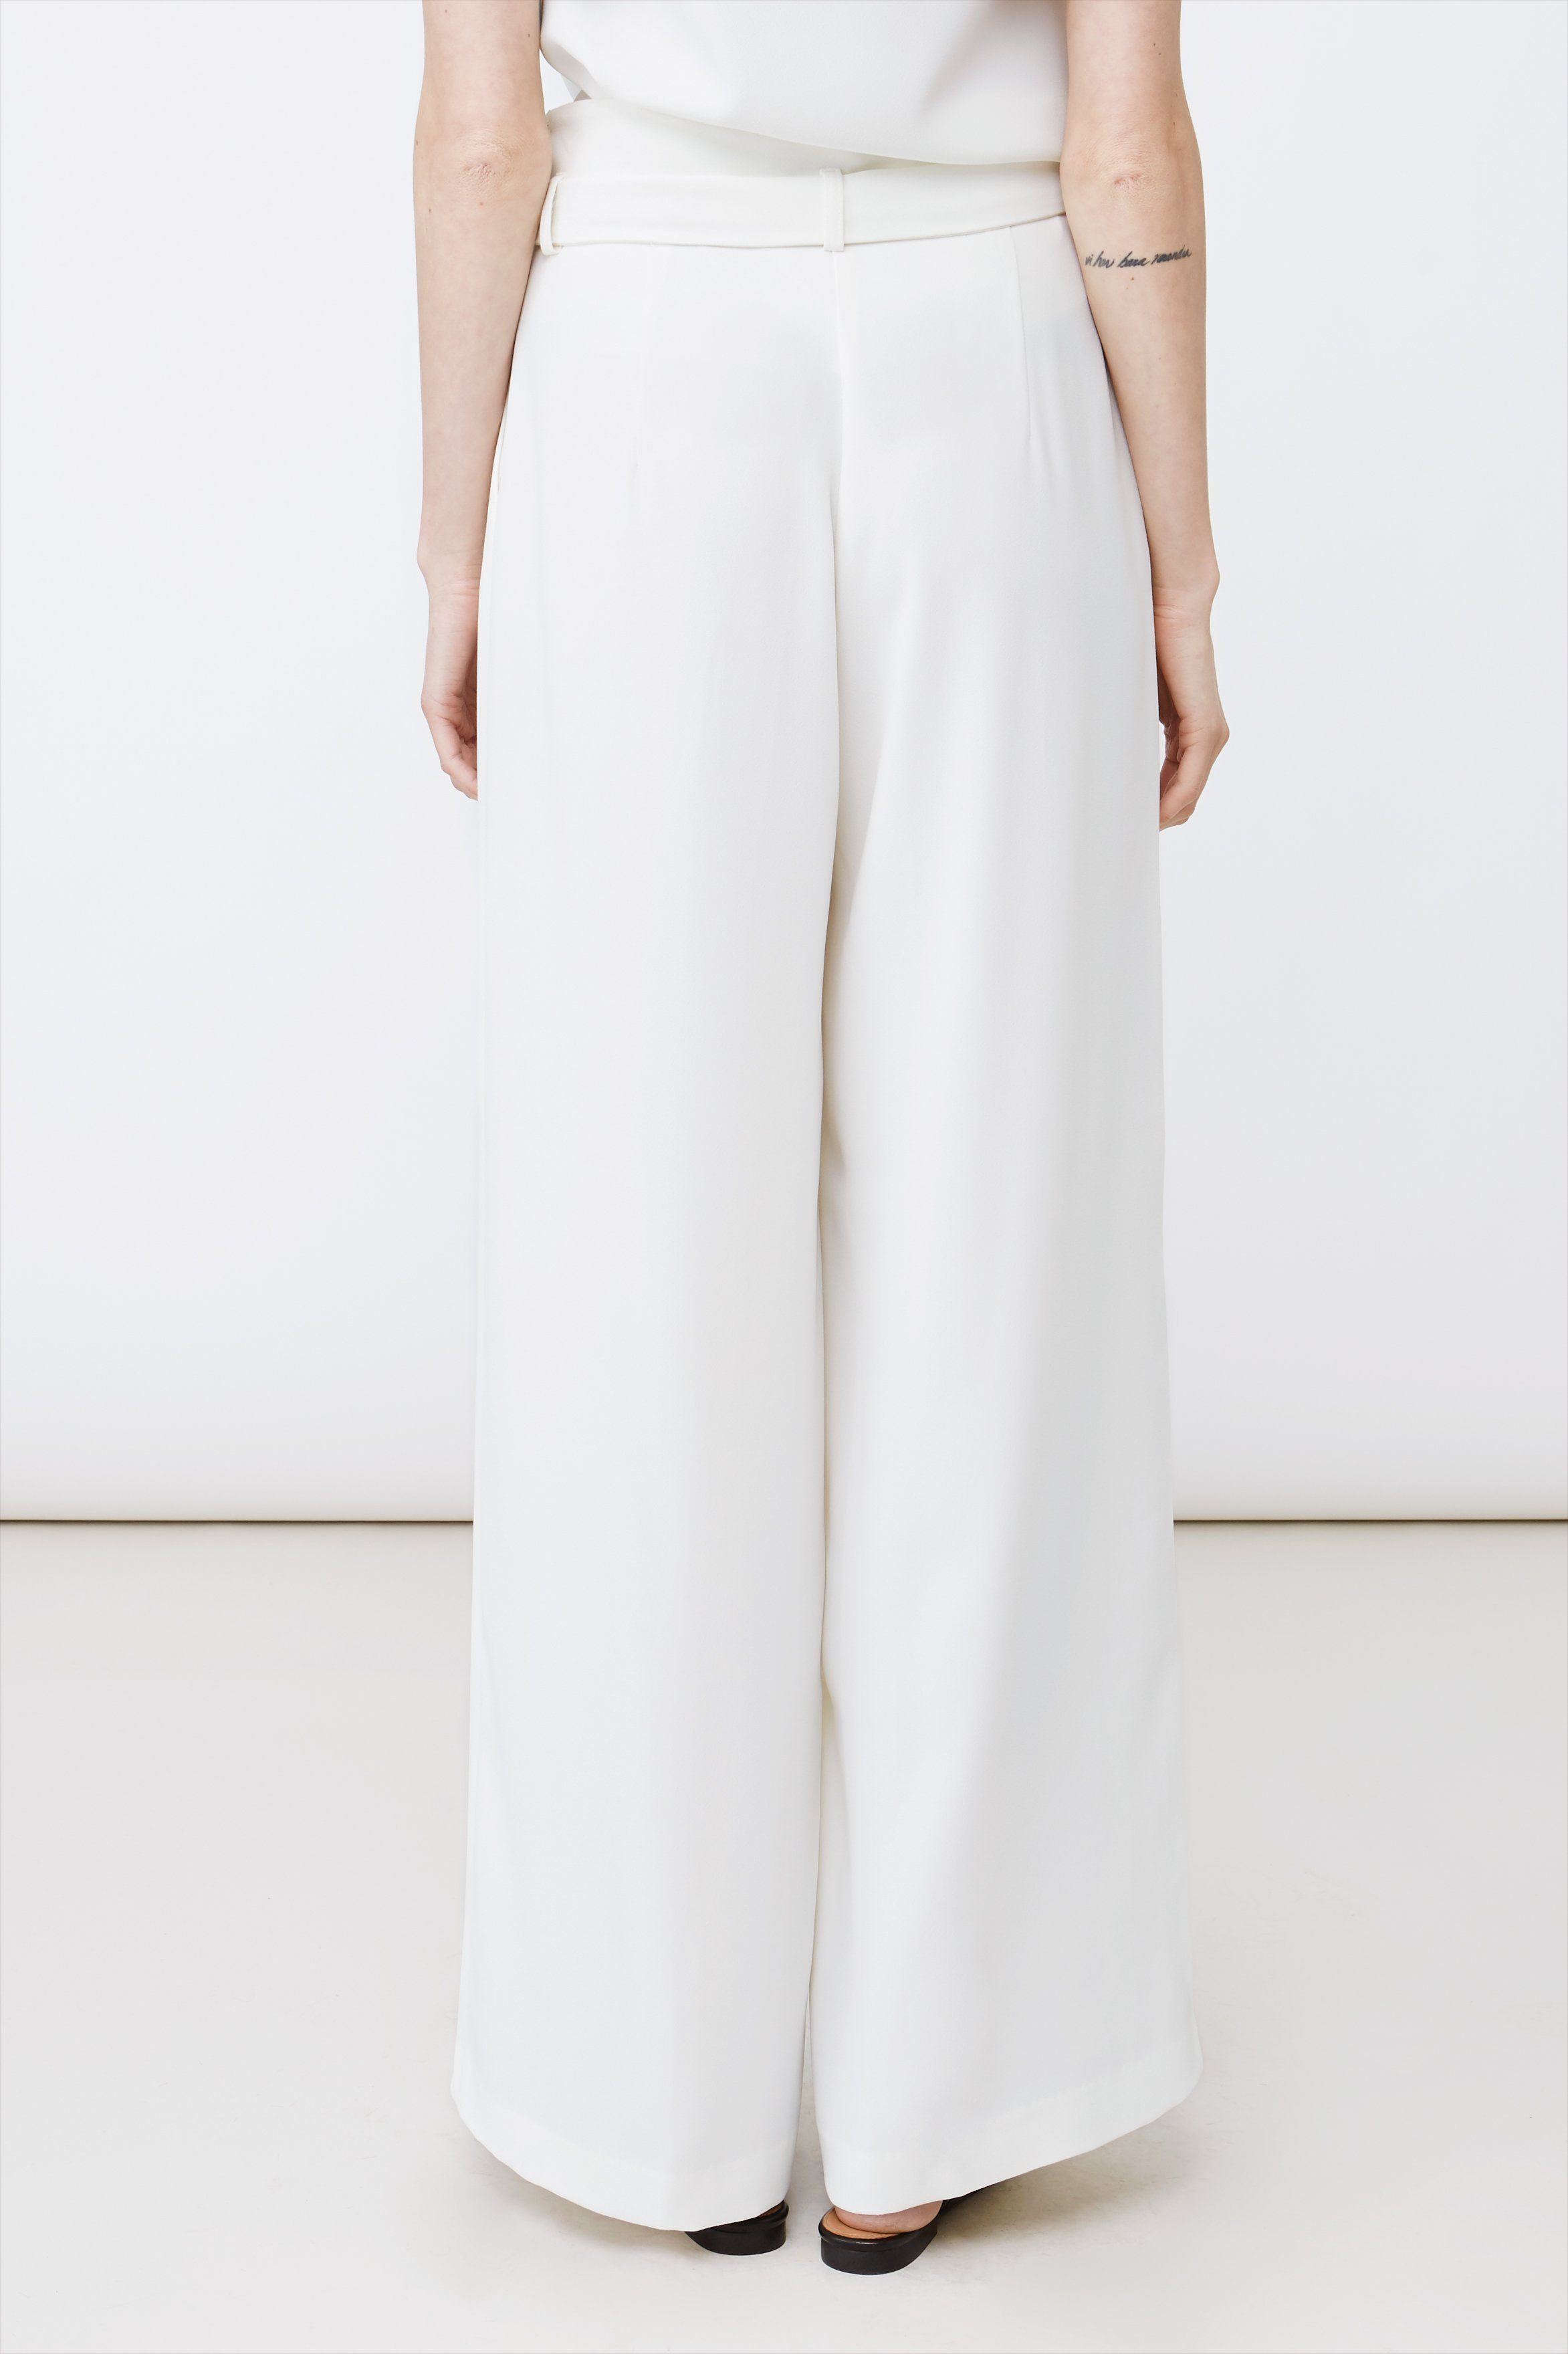 BELLONA TROUSERS Trousers Stylein